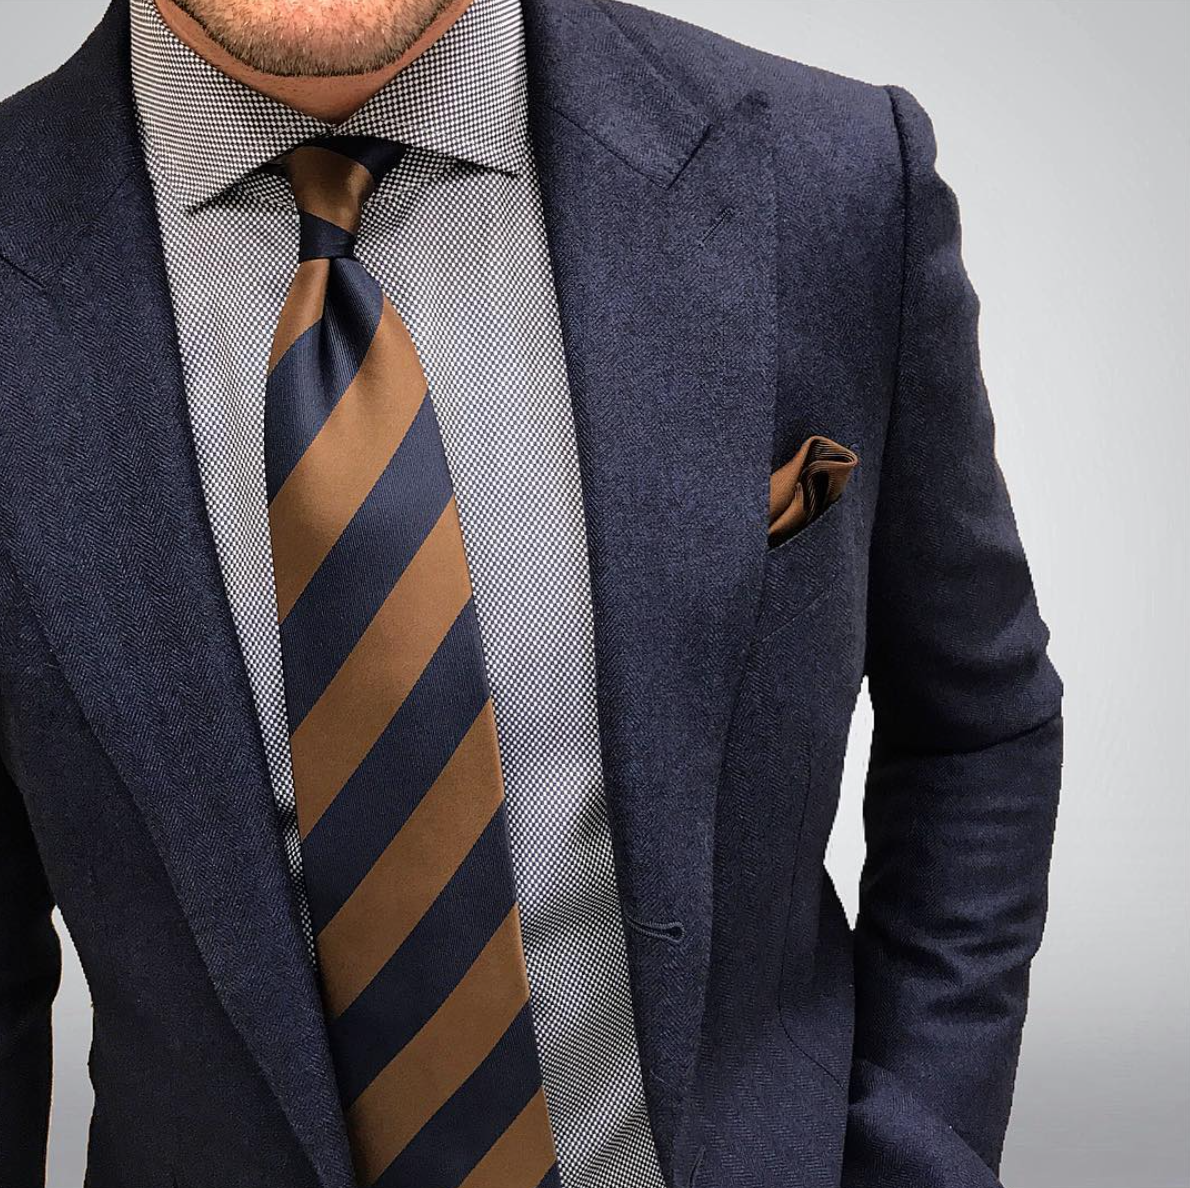 Great Clean Style For Men In A Suit Tie And Pocket Square